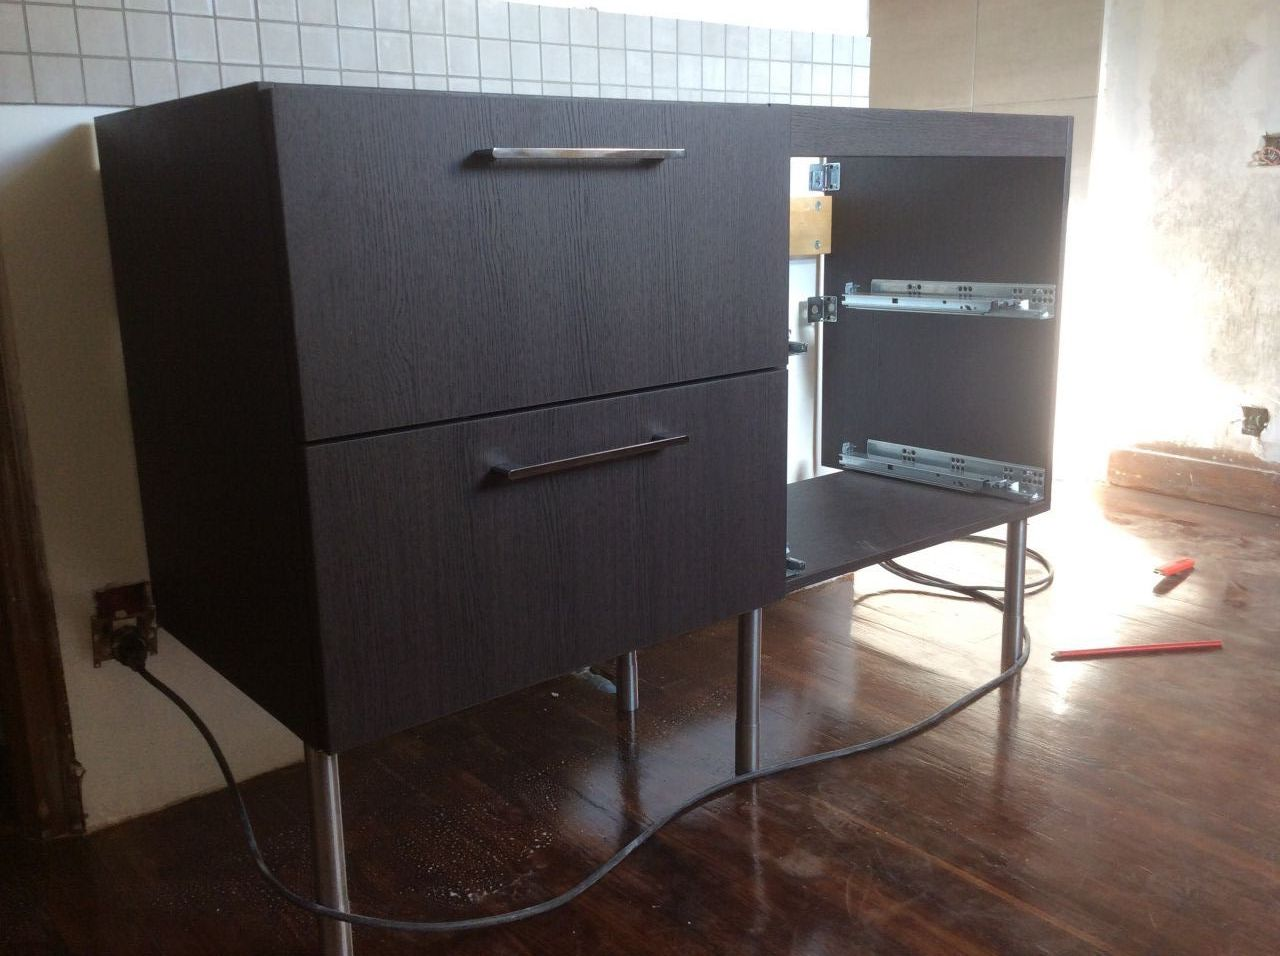 finest meuble lavabo toilette meuble lavabo ikea meubles et id es pour la salle de bains with. Black Bedroom Furniture Sets. Home Design Ideas